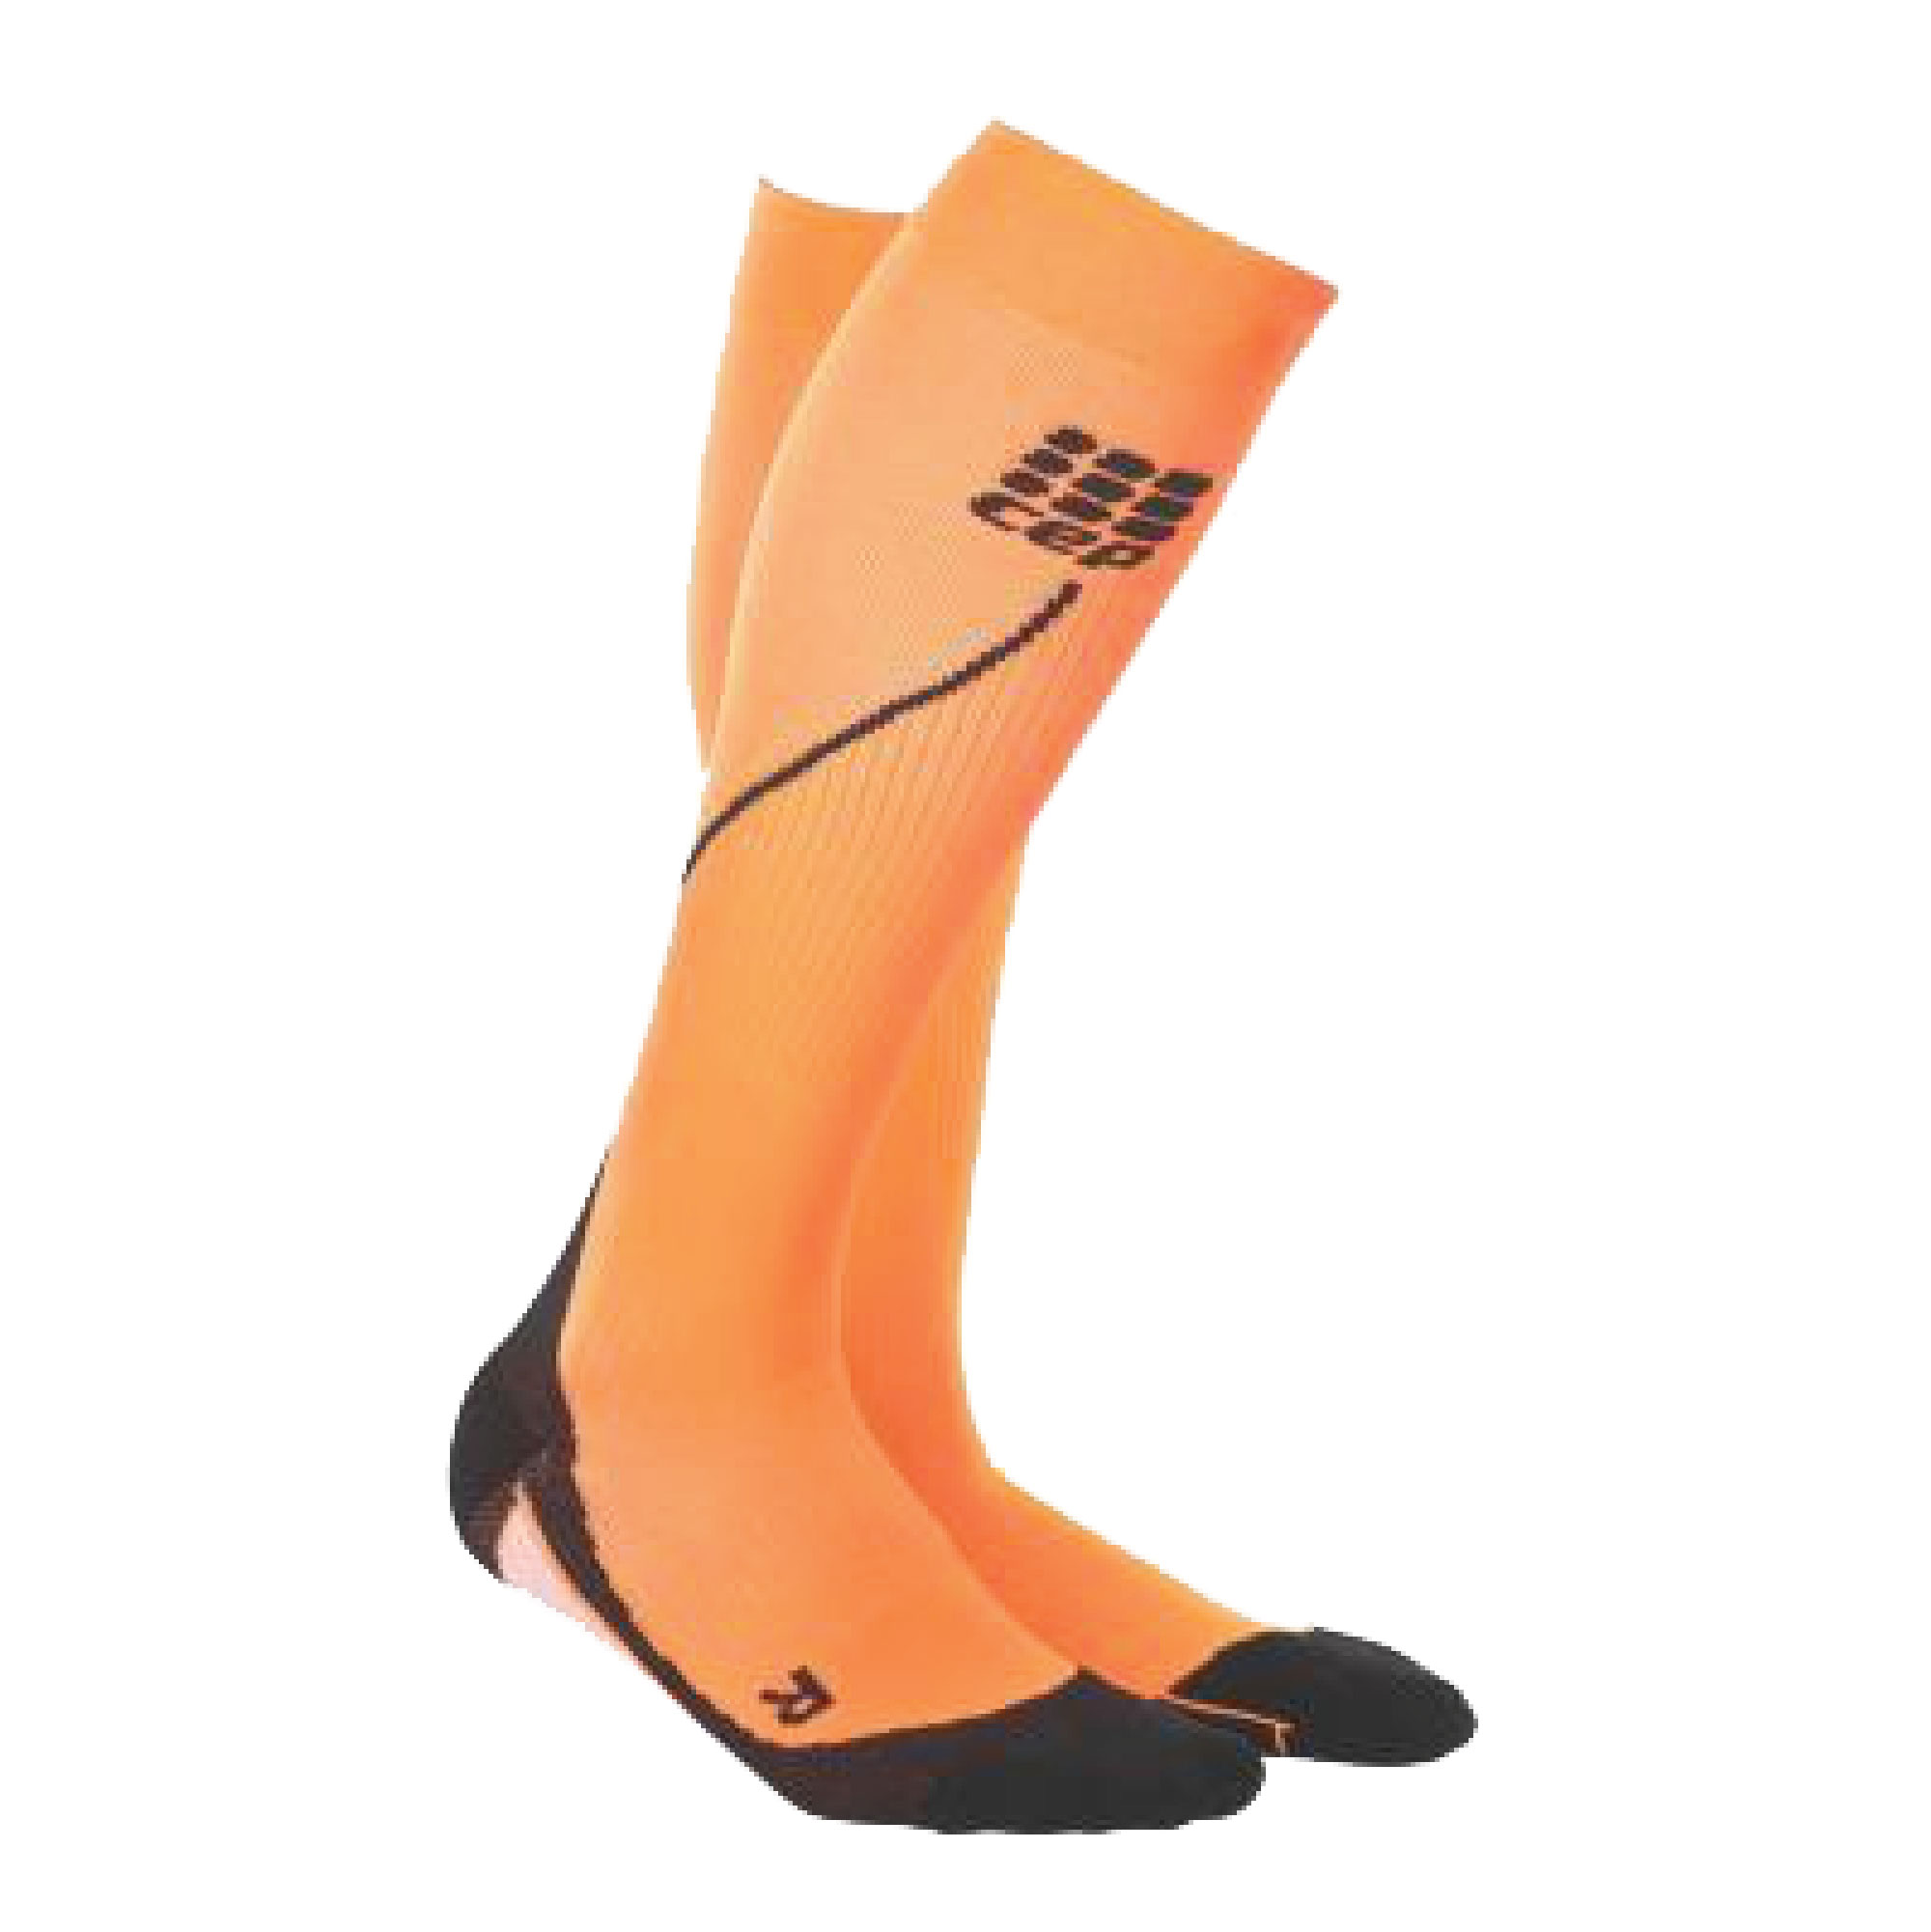 NIGHT RUN SOCKS 2.0 | WOMEN